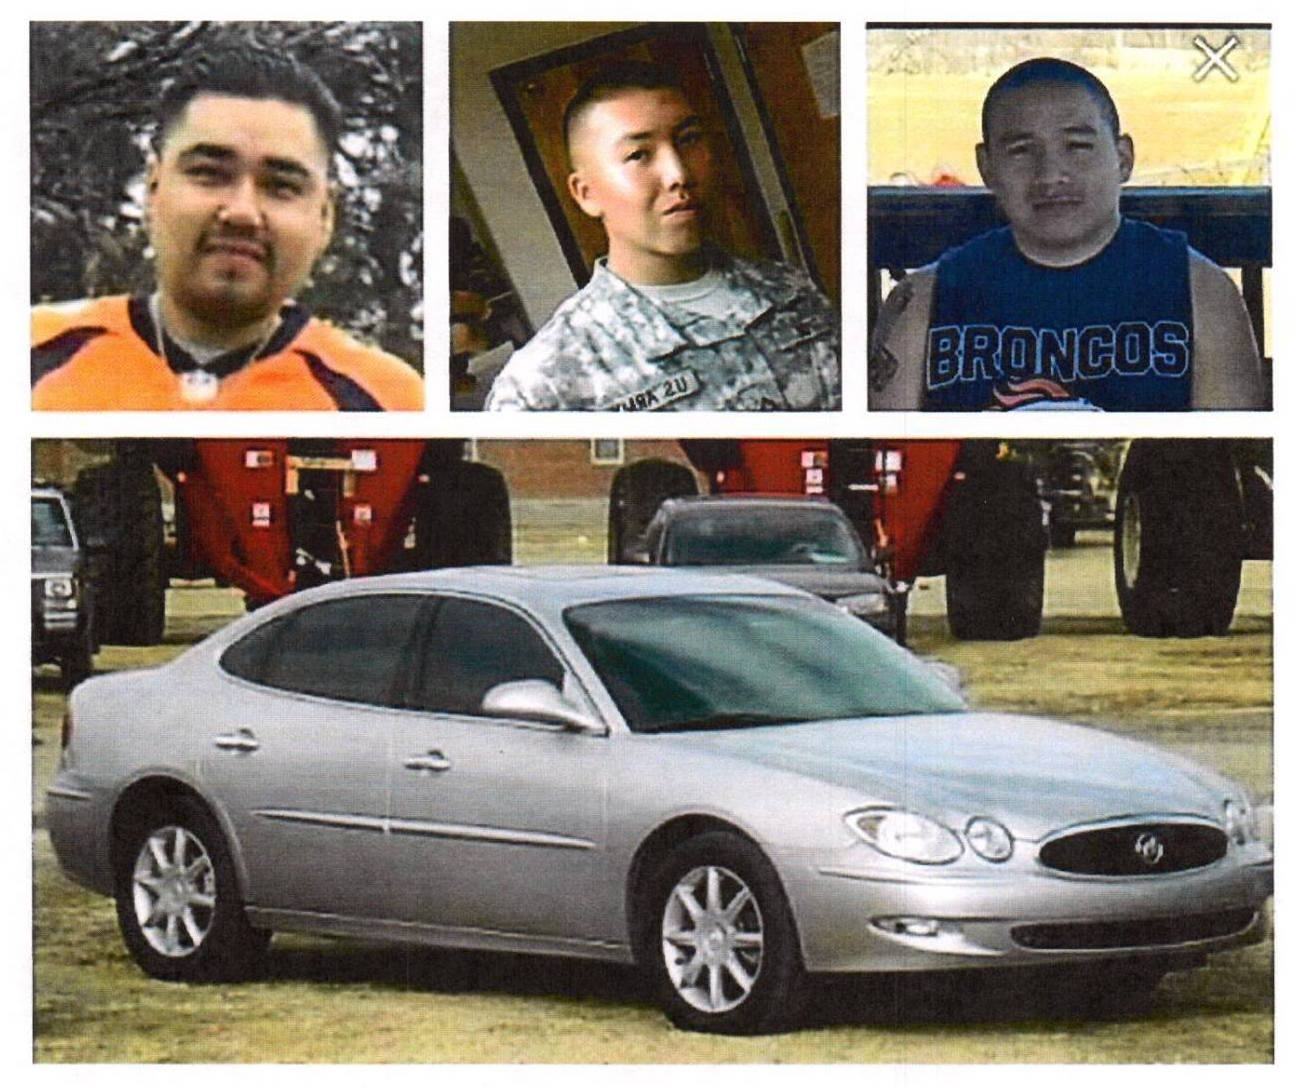 Lakota Country Times: Search continues for missing Native men